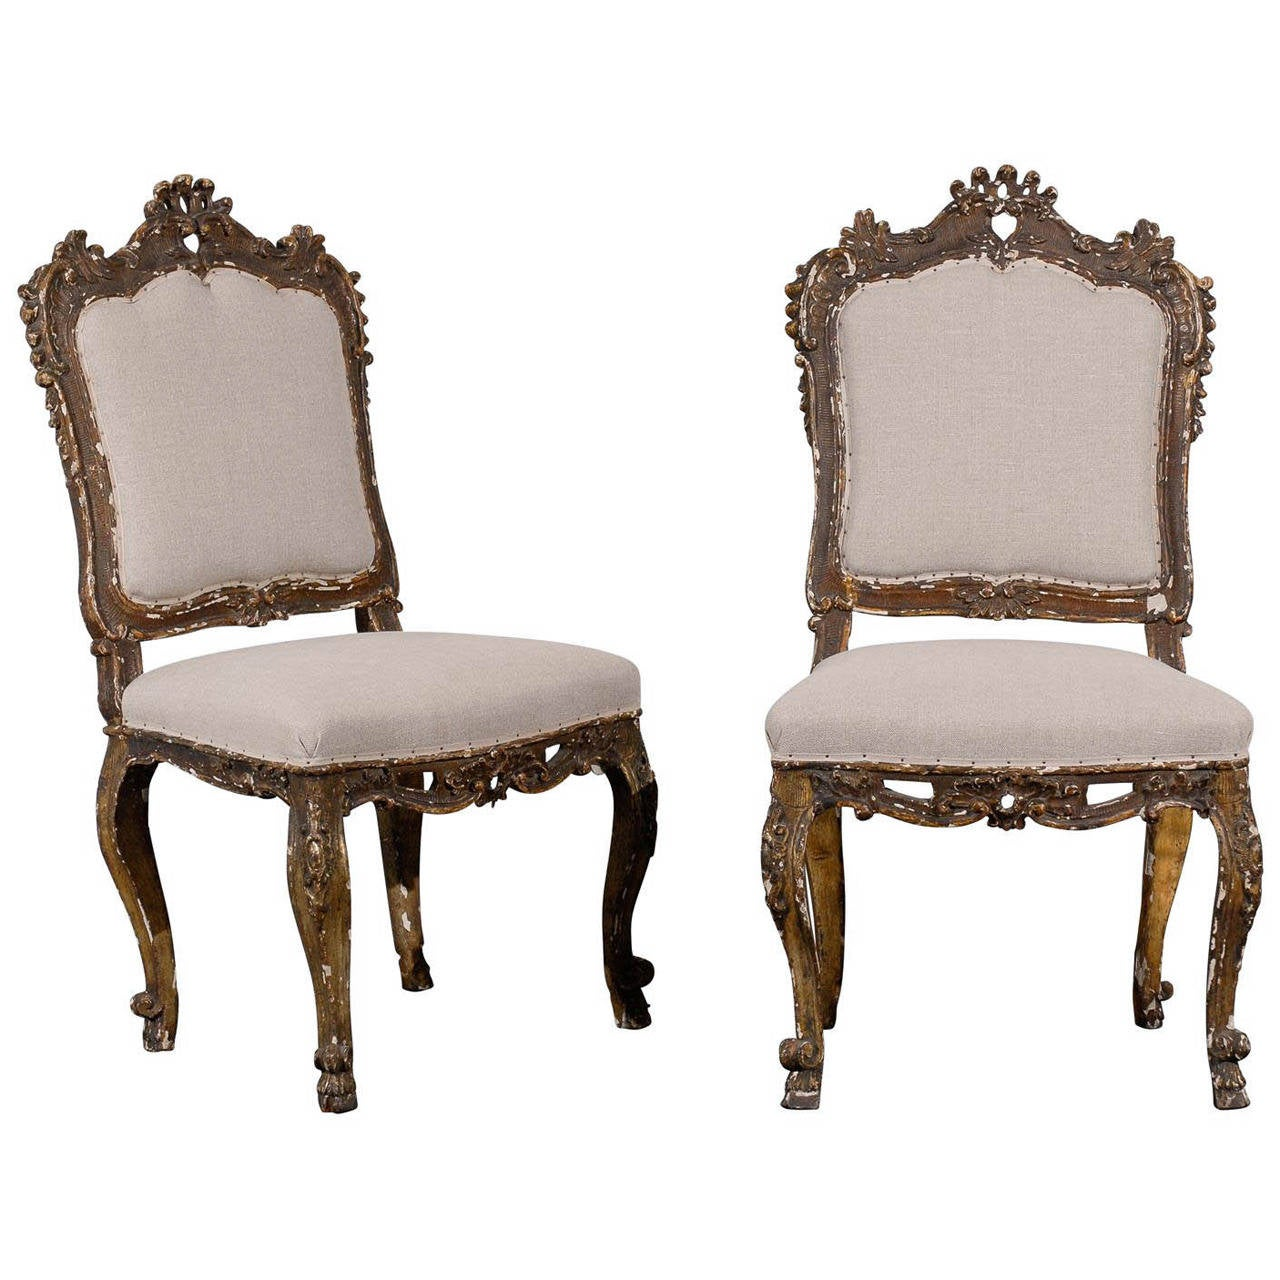 Nice Pair Of Italian Ornate, 18th Century Venetian Style Side Chairs With Nice  Aging For Sale